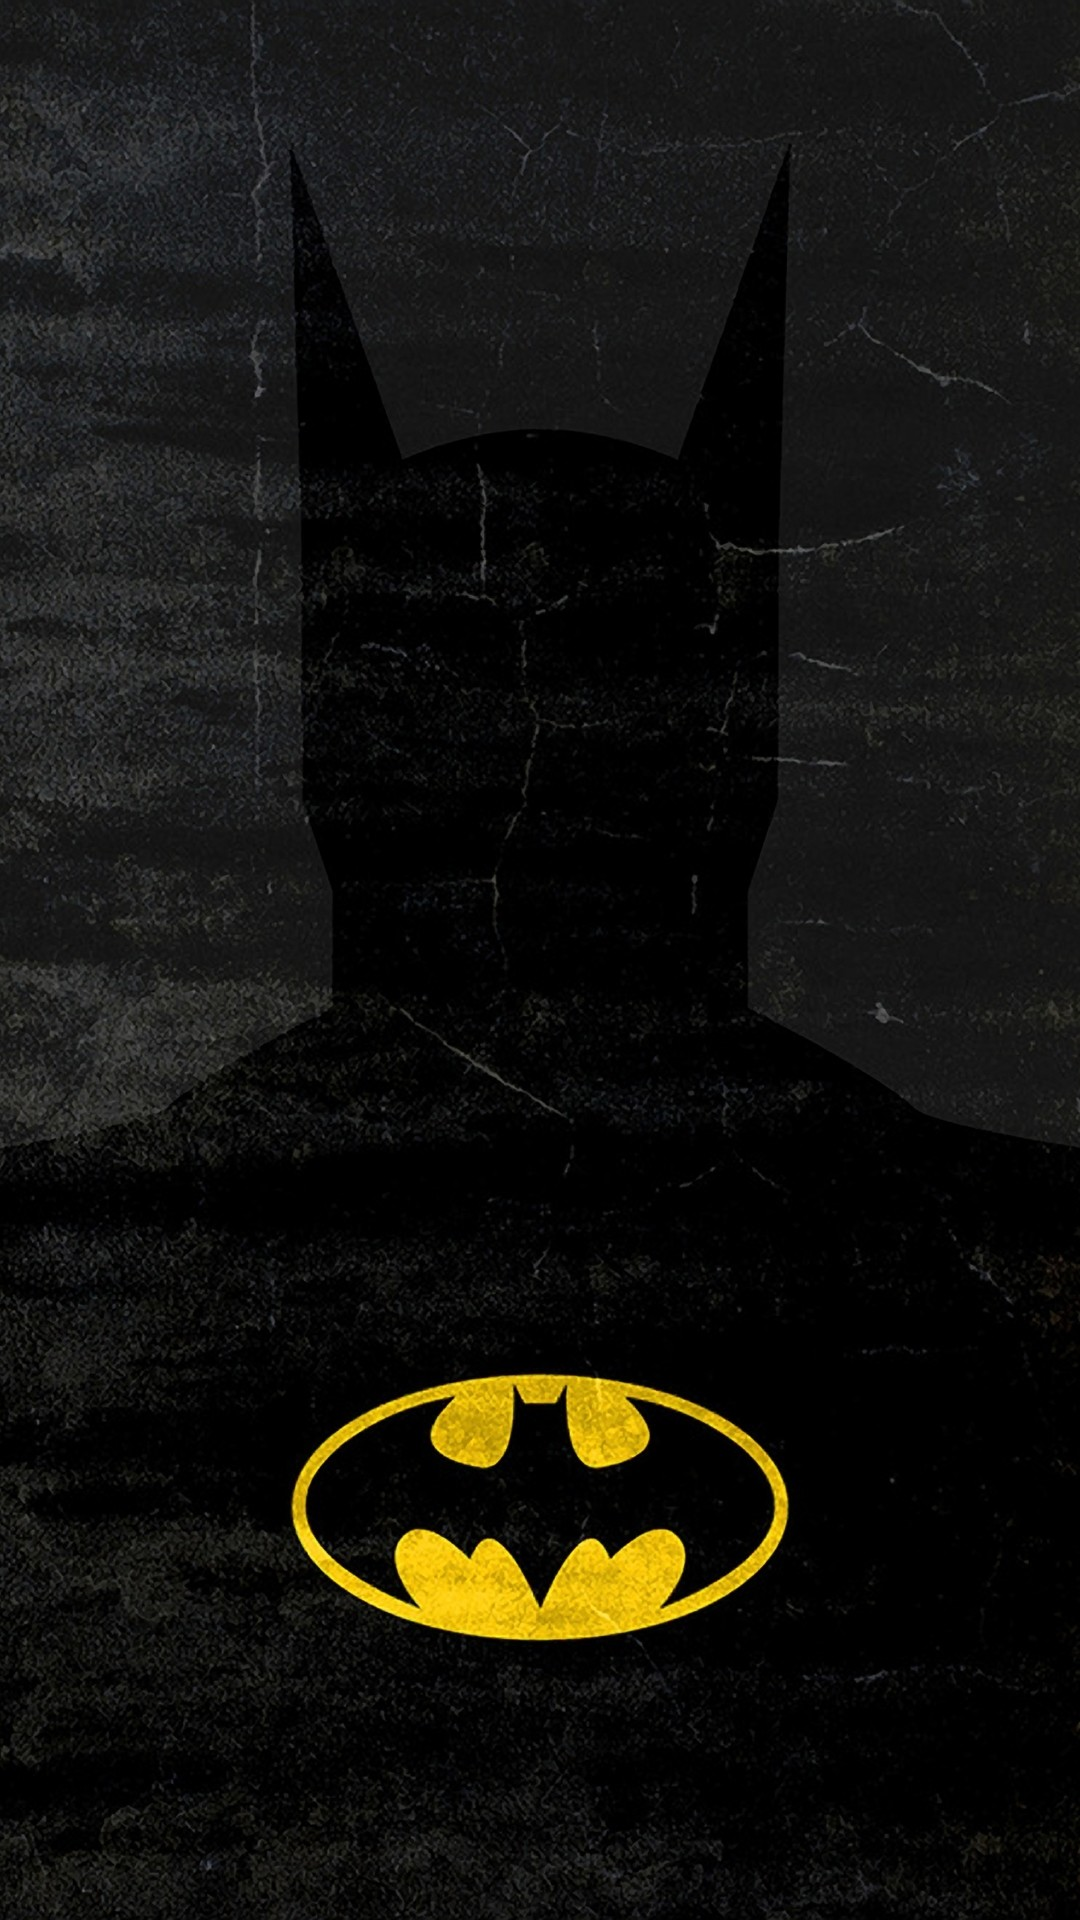 Batman Phone Wallpaper Hd 61 Images